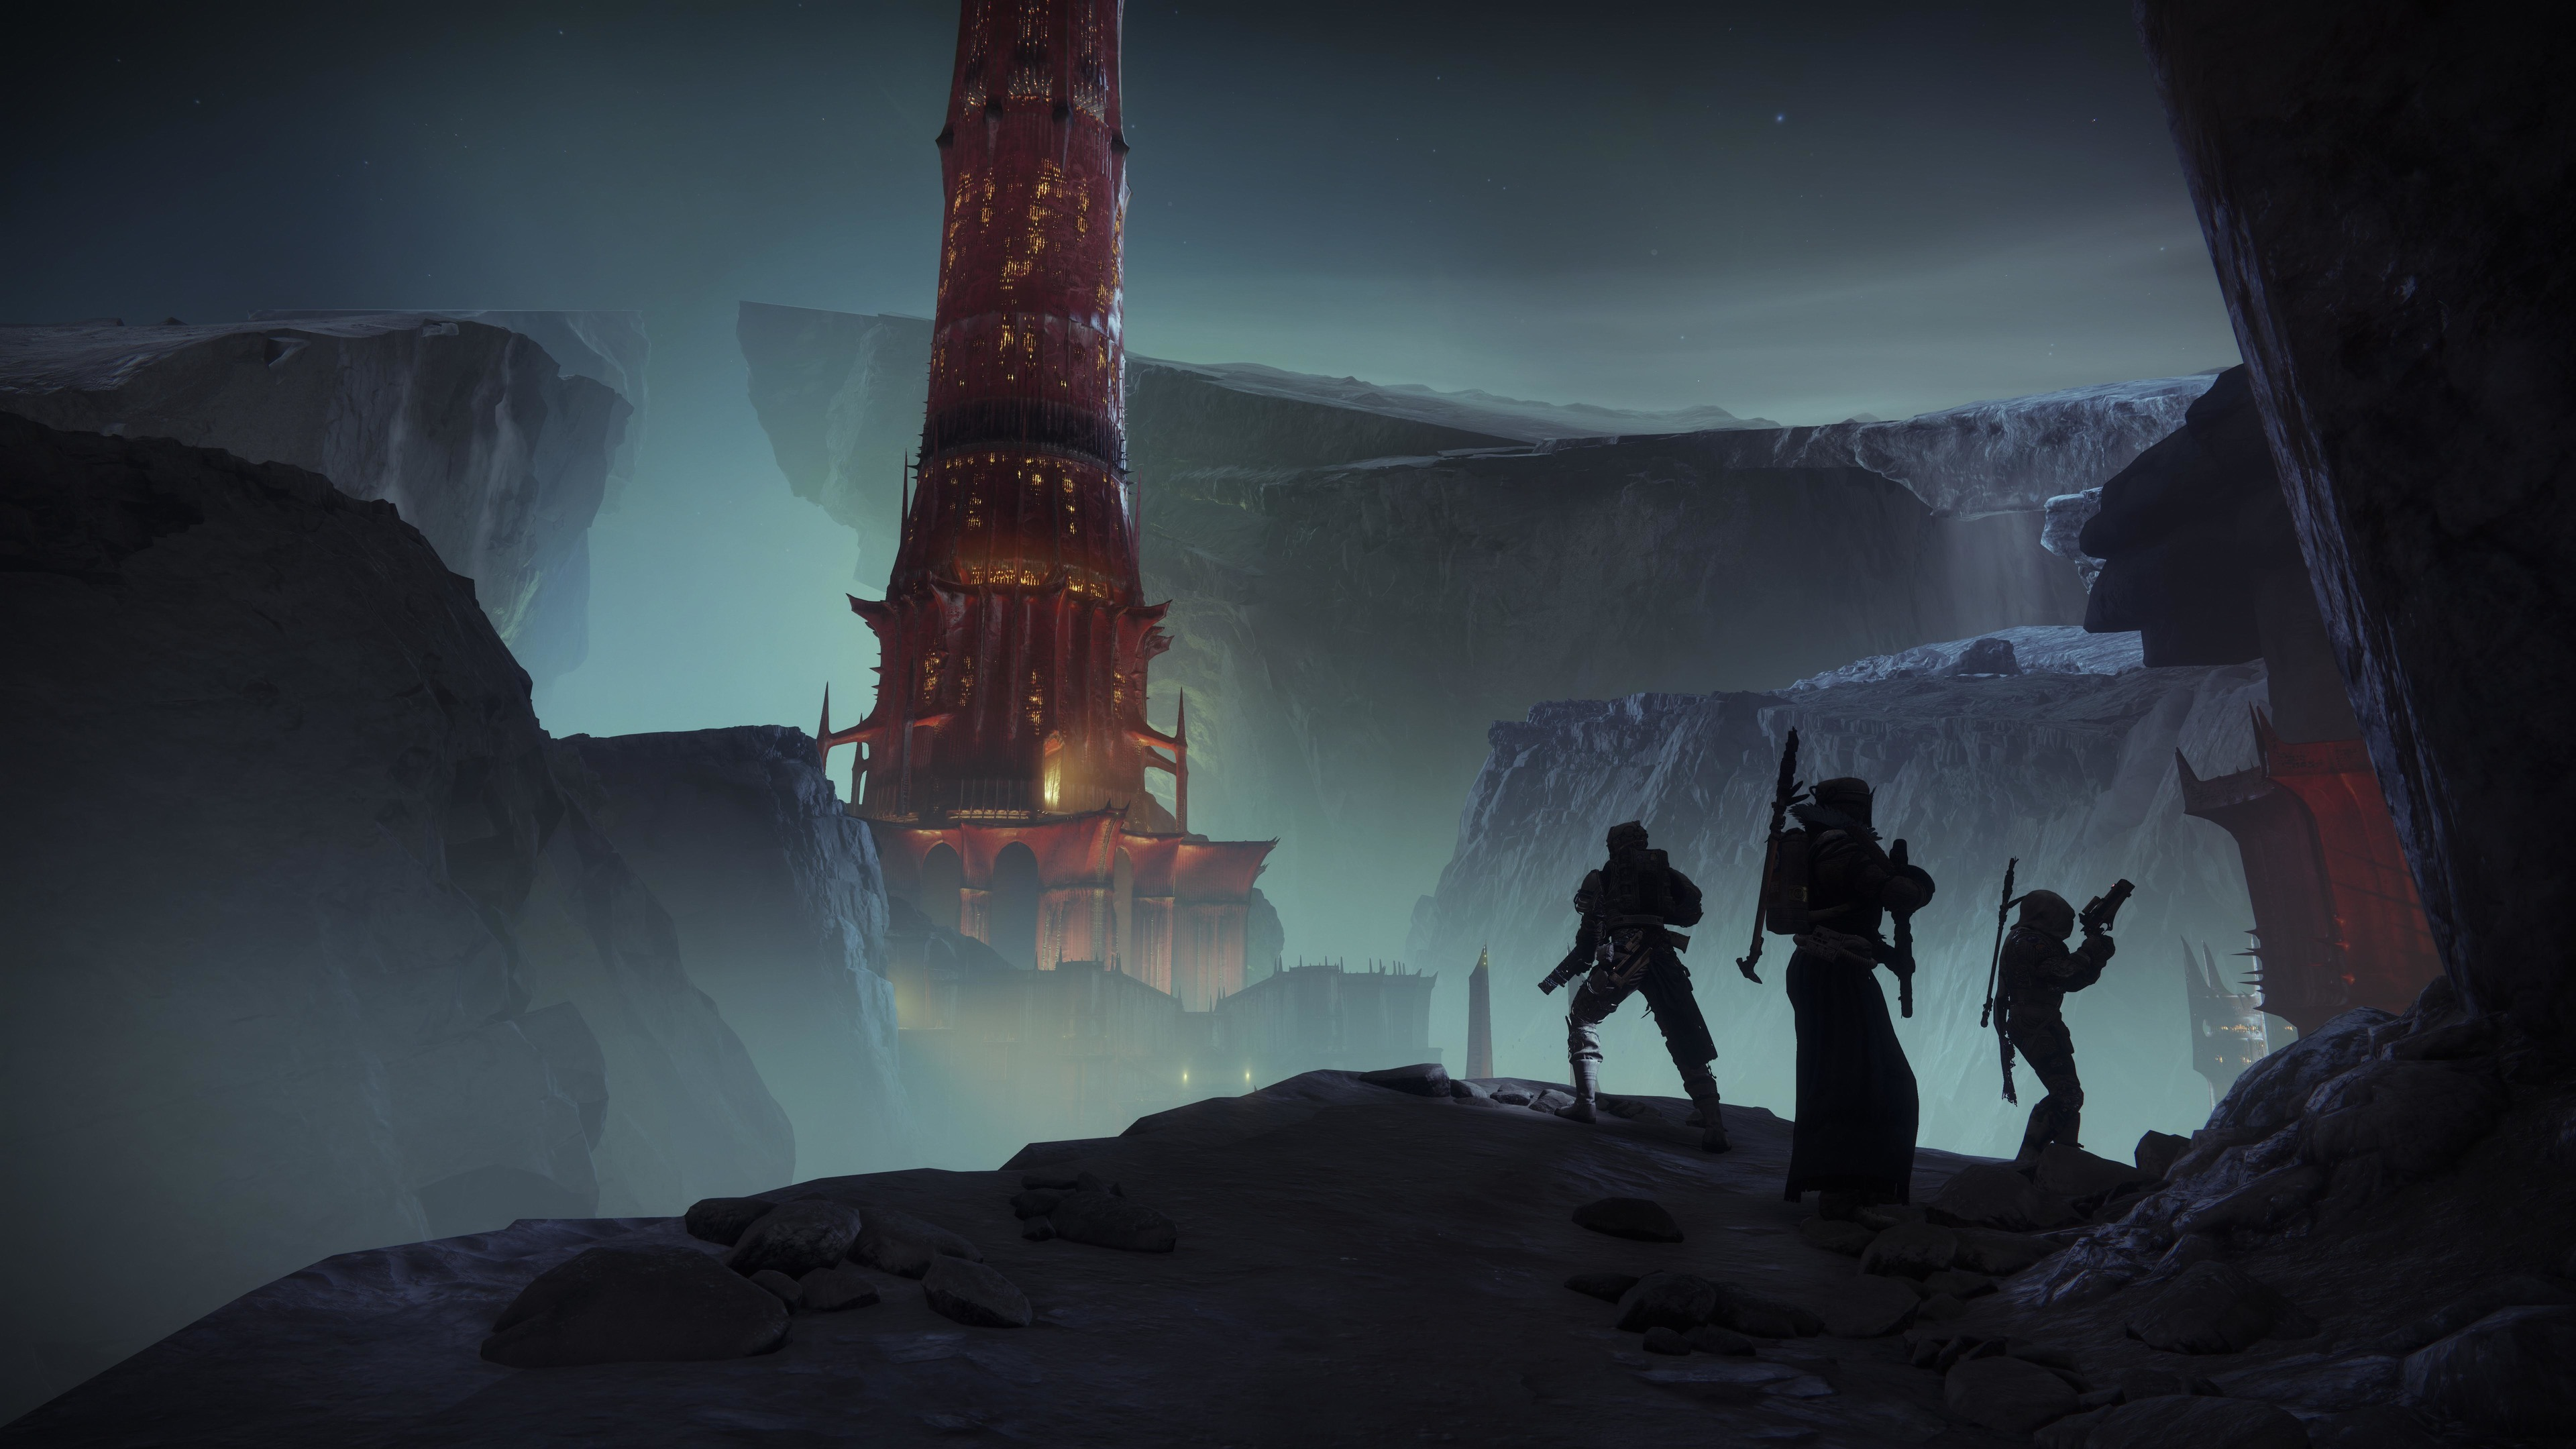 destiny 2 shadowkeep and new light dlc 2019 1565054478 - Destiny 2 Shadowkeep And New Light Dlc 2019 - hd-wallpapers, games wallpapers, destiny wallpapers, destiny 2 wallpapers, 8k wallpapers, 5k wallpapers, 4k-wallpapers, 2019 games wallpapers